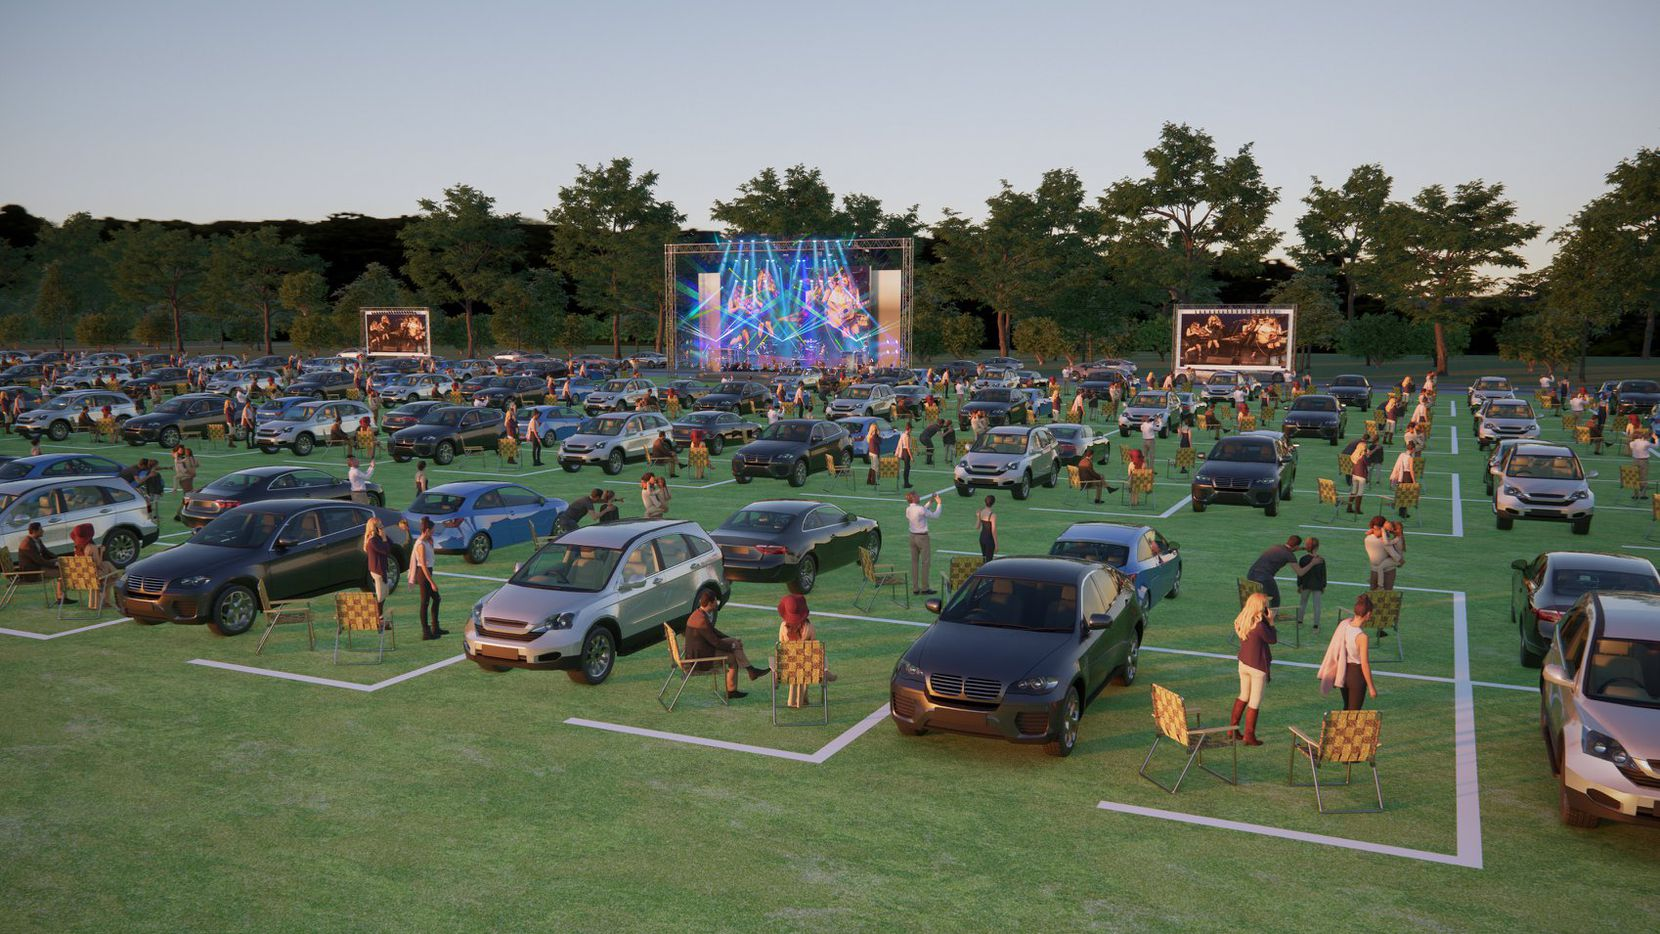 Renderings show what the social distancing-friendly set-up will look like at the McKinney Performing Arts Center's summer concert series. The series, taking place at TUPPS Brewery, begins Saturday with a concert from Farewell Angelina.